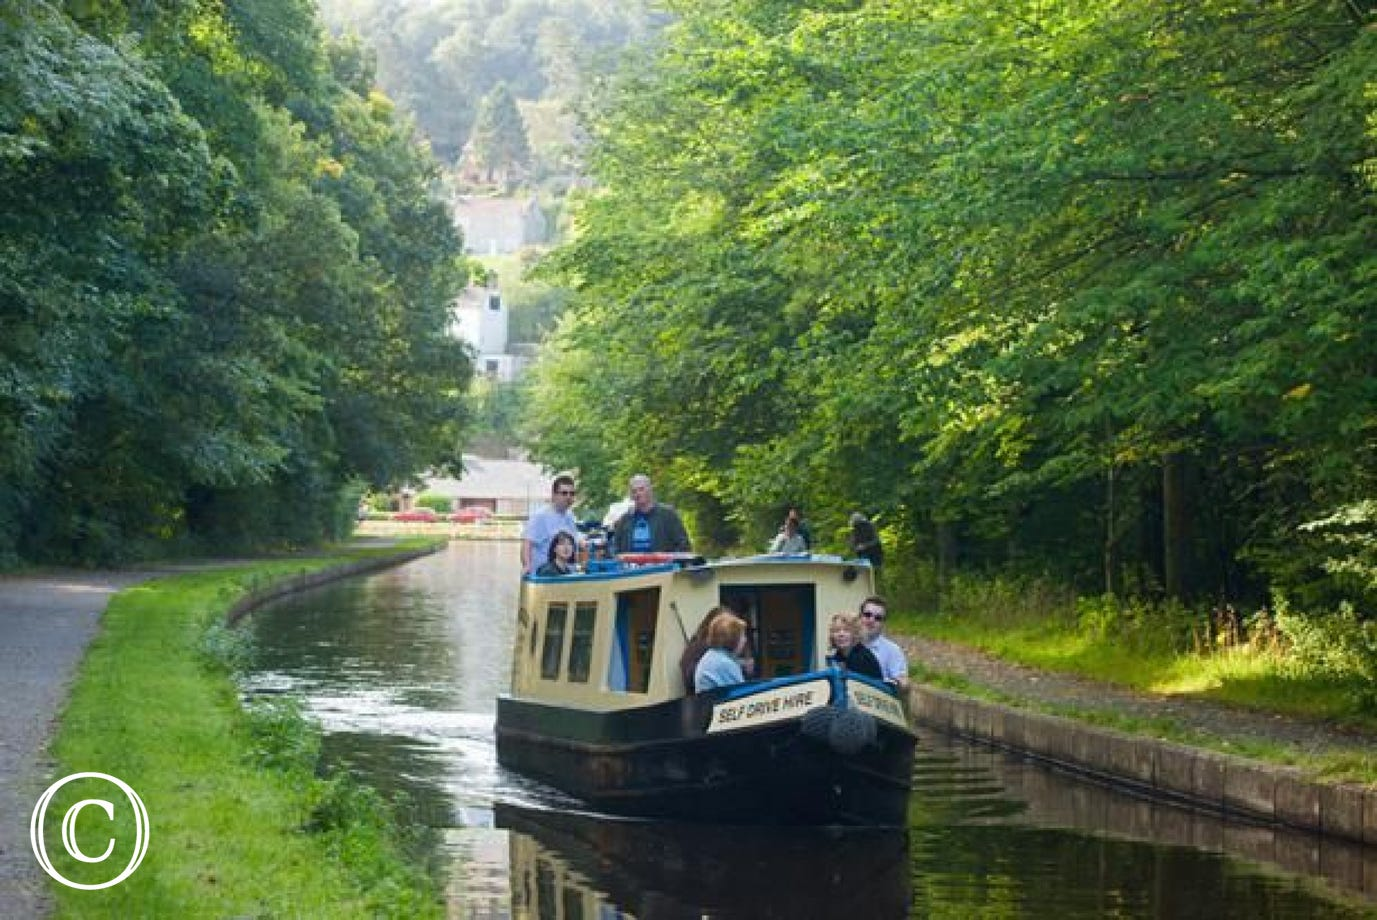 Motor or horse drawn carriages available on Llangollen canal